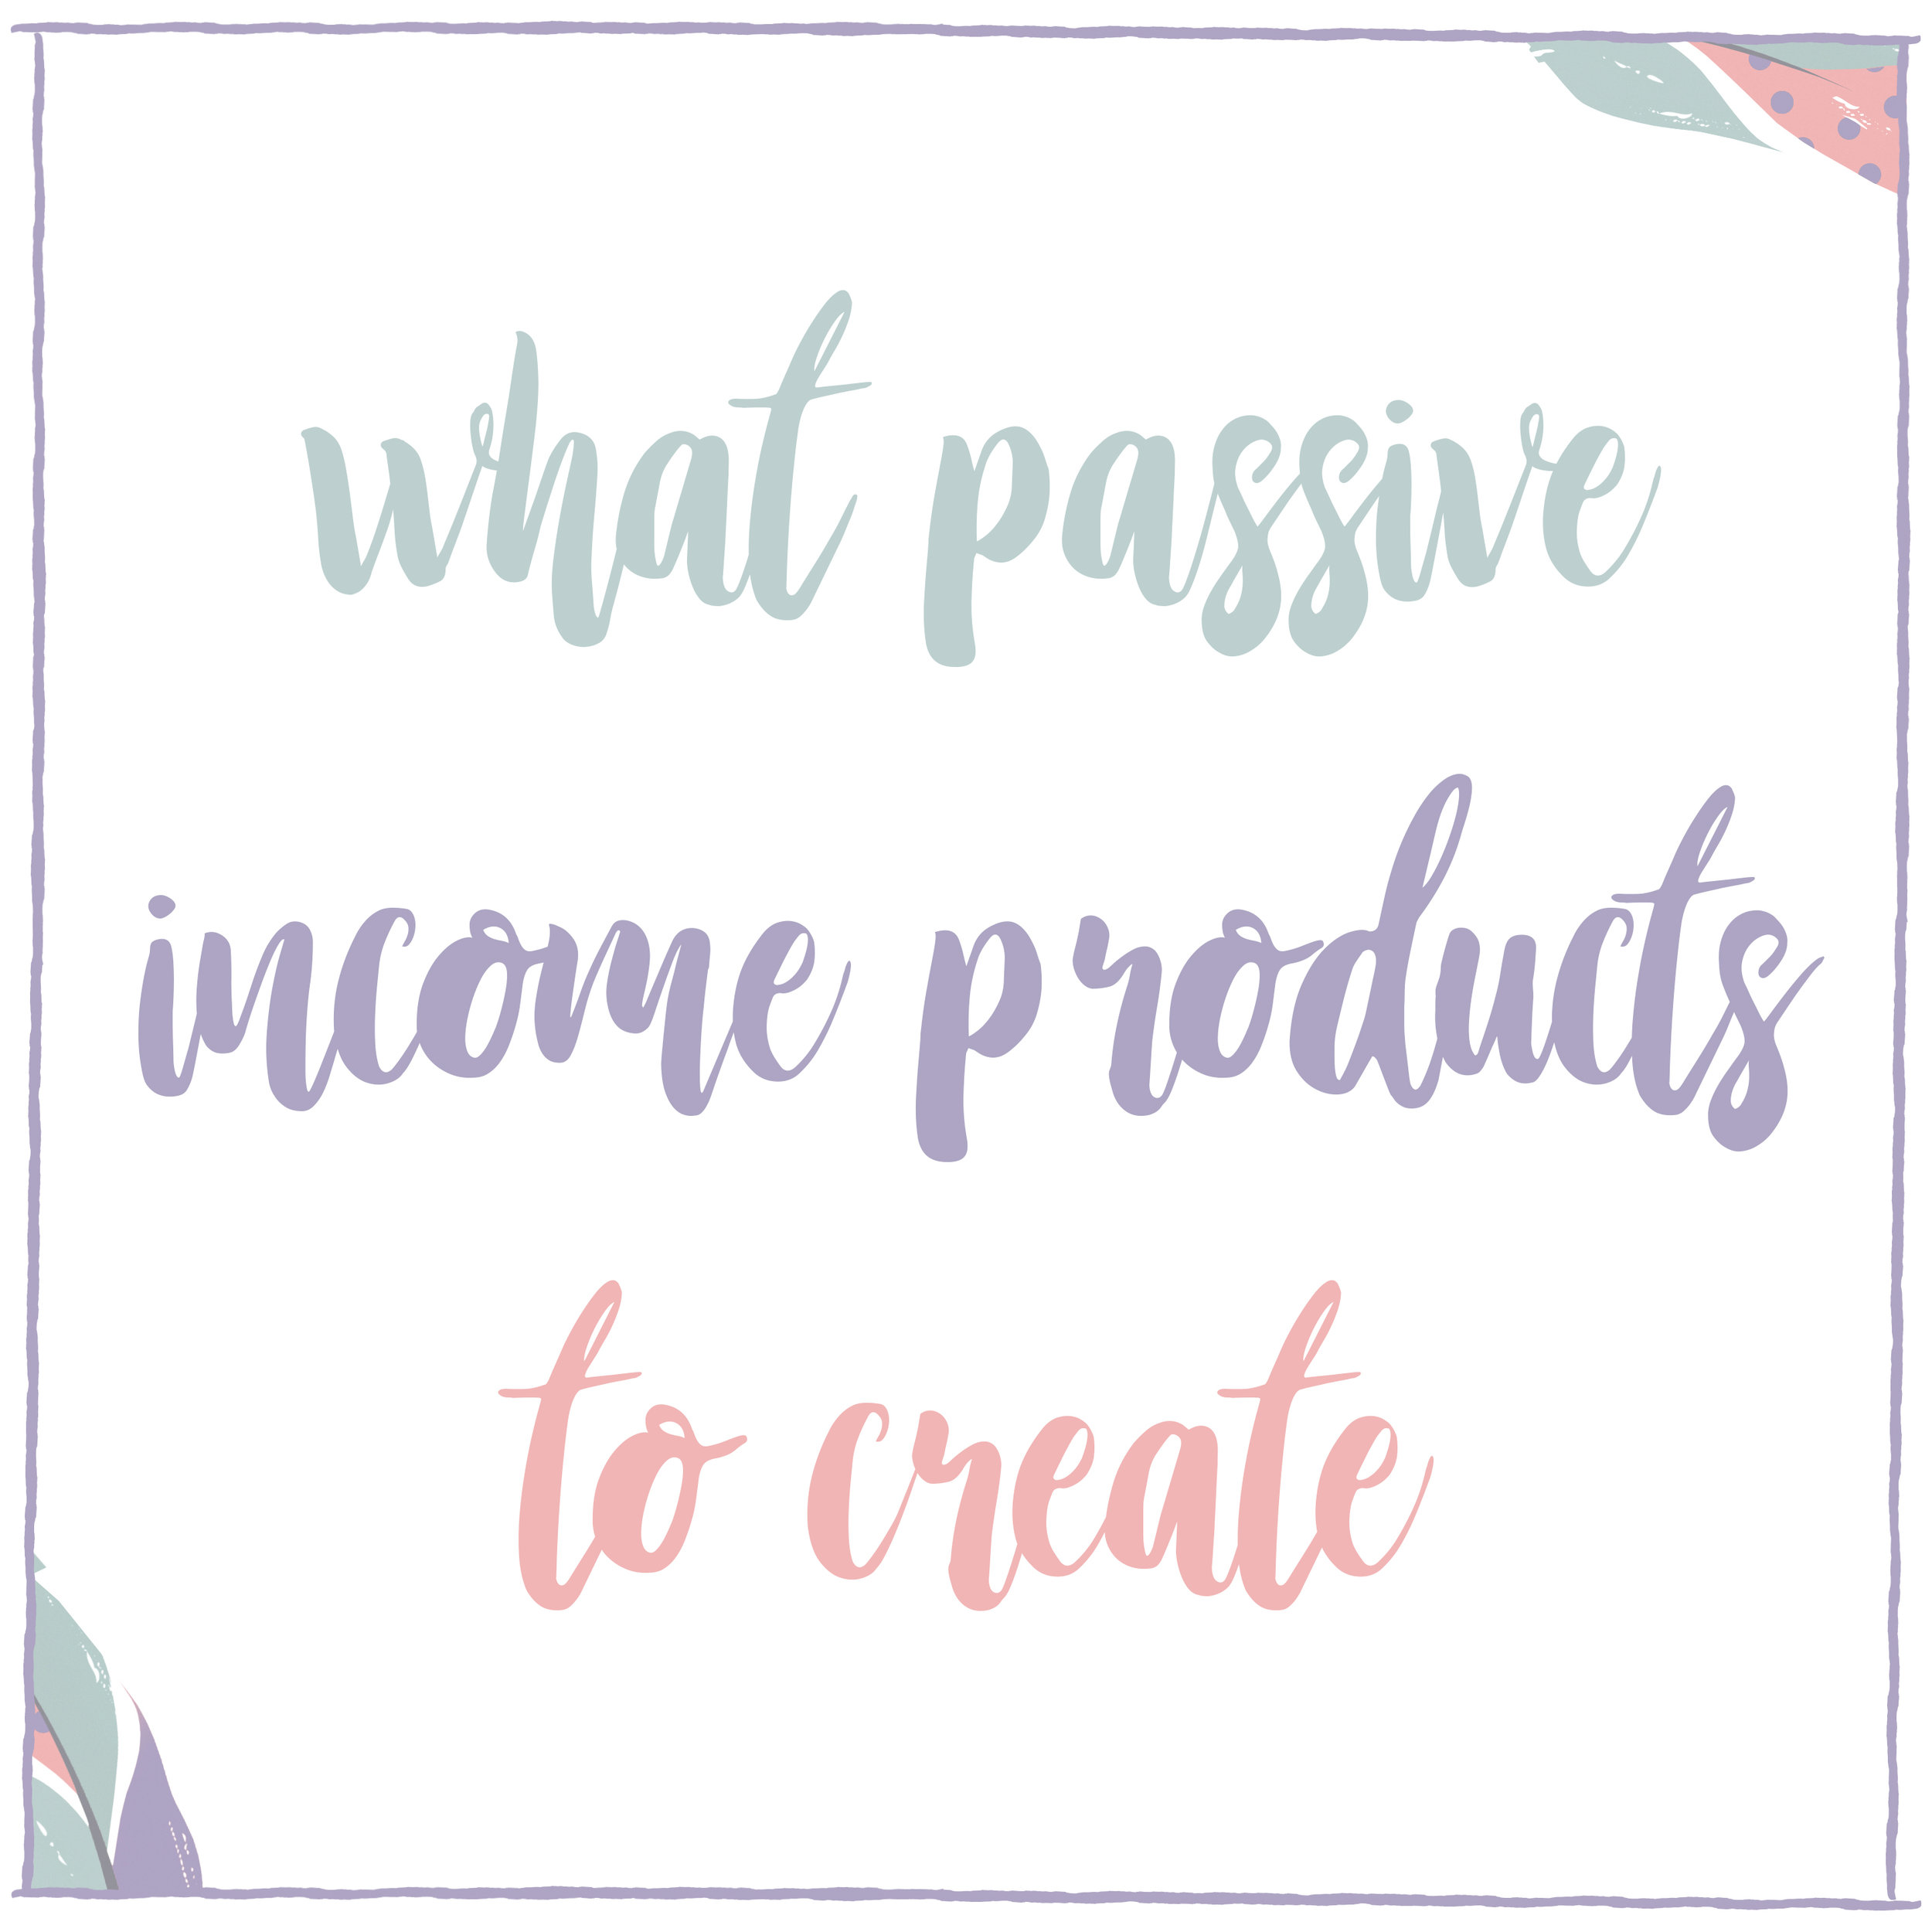 What Passive Income Products to Create.jpg